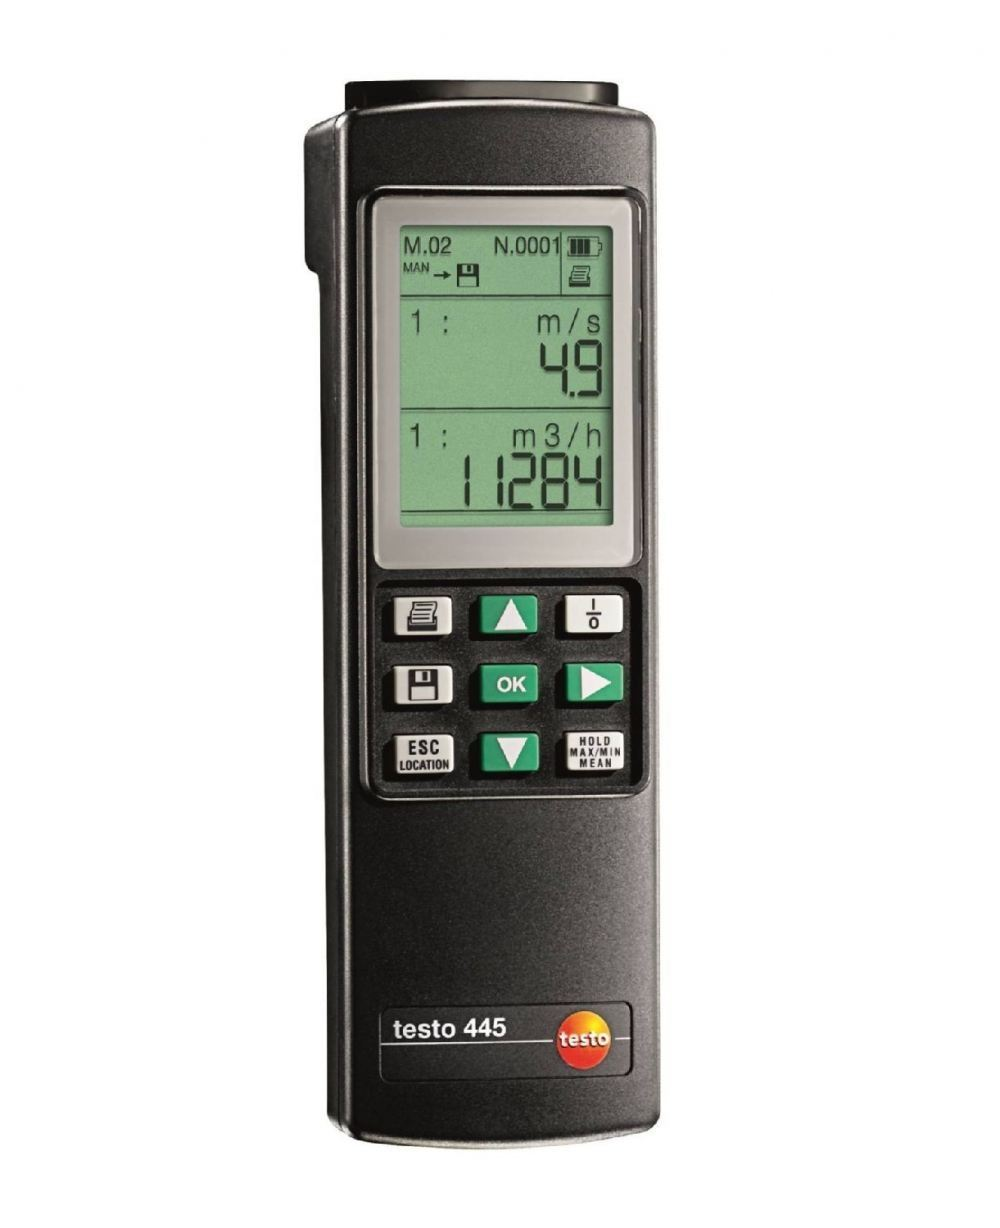 testo 445 - climate measuring instrument